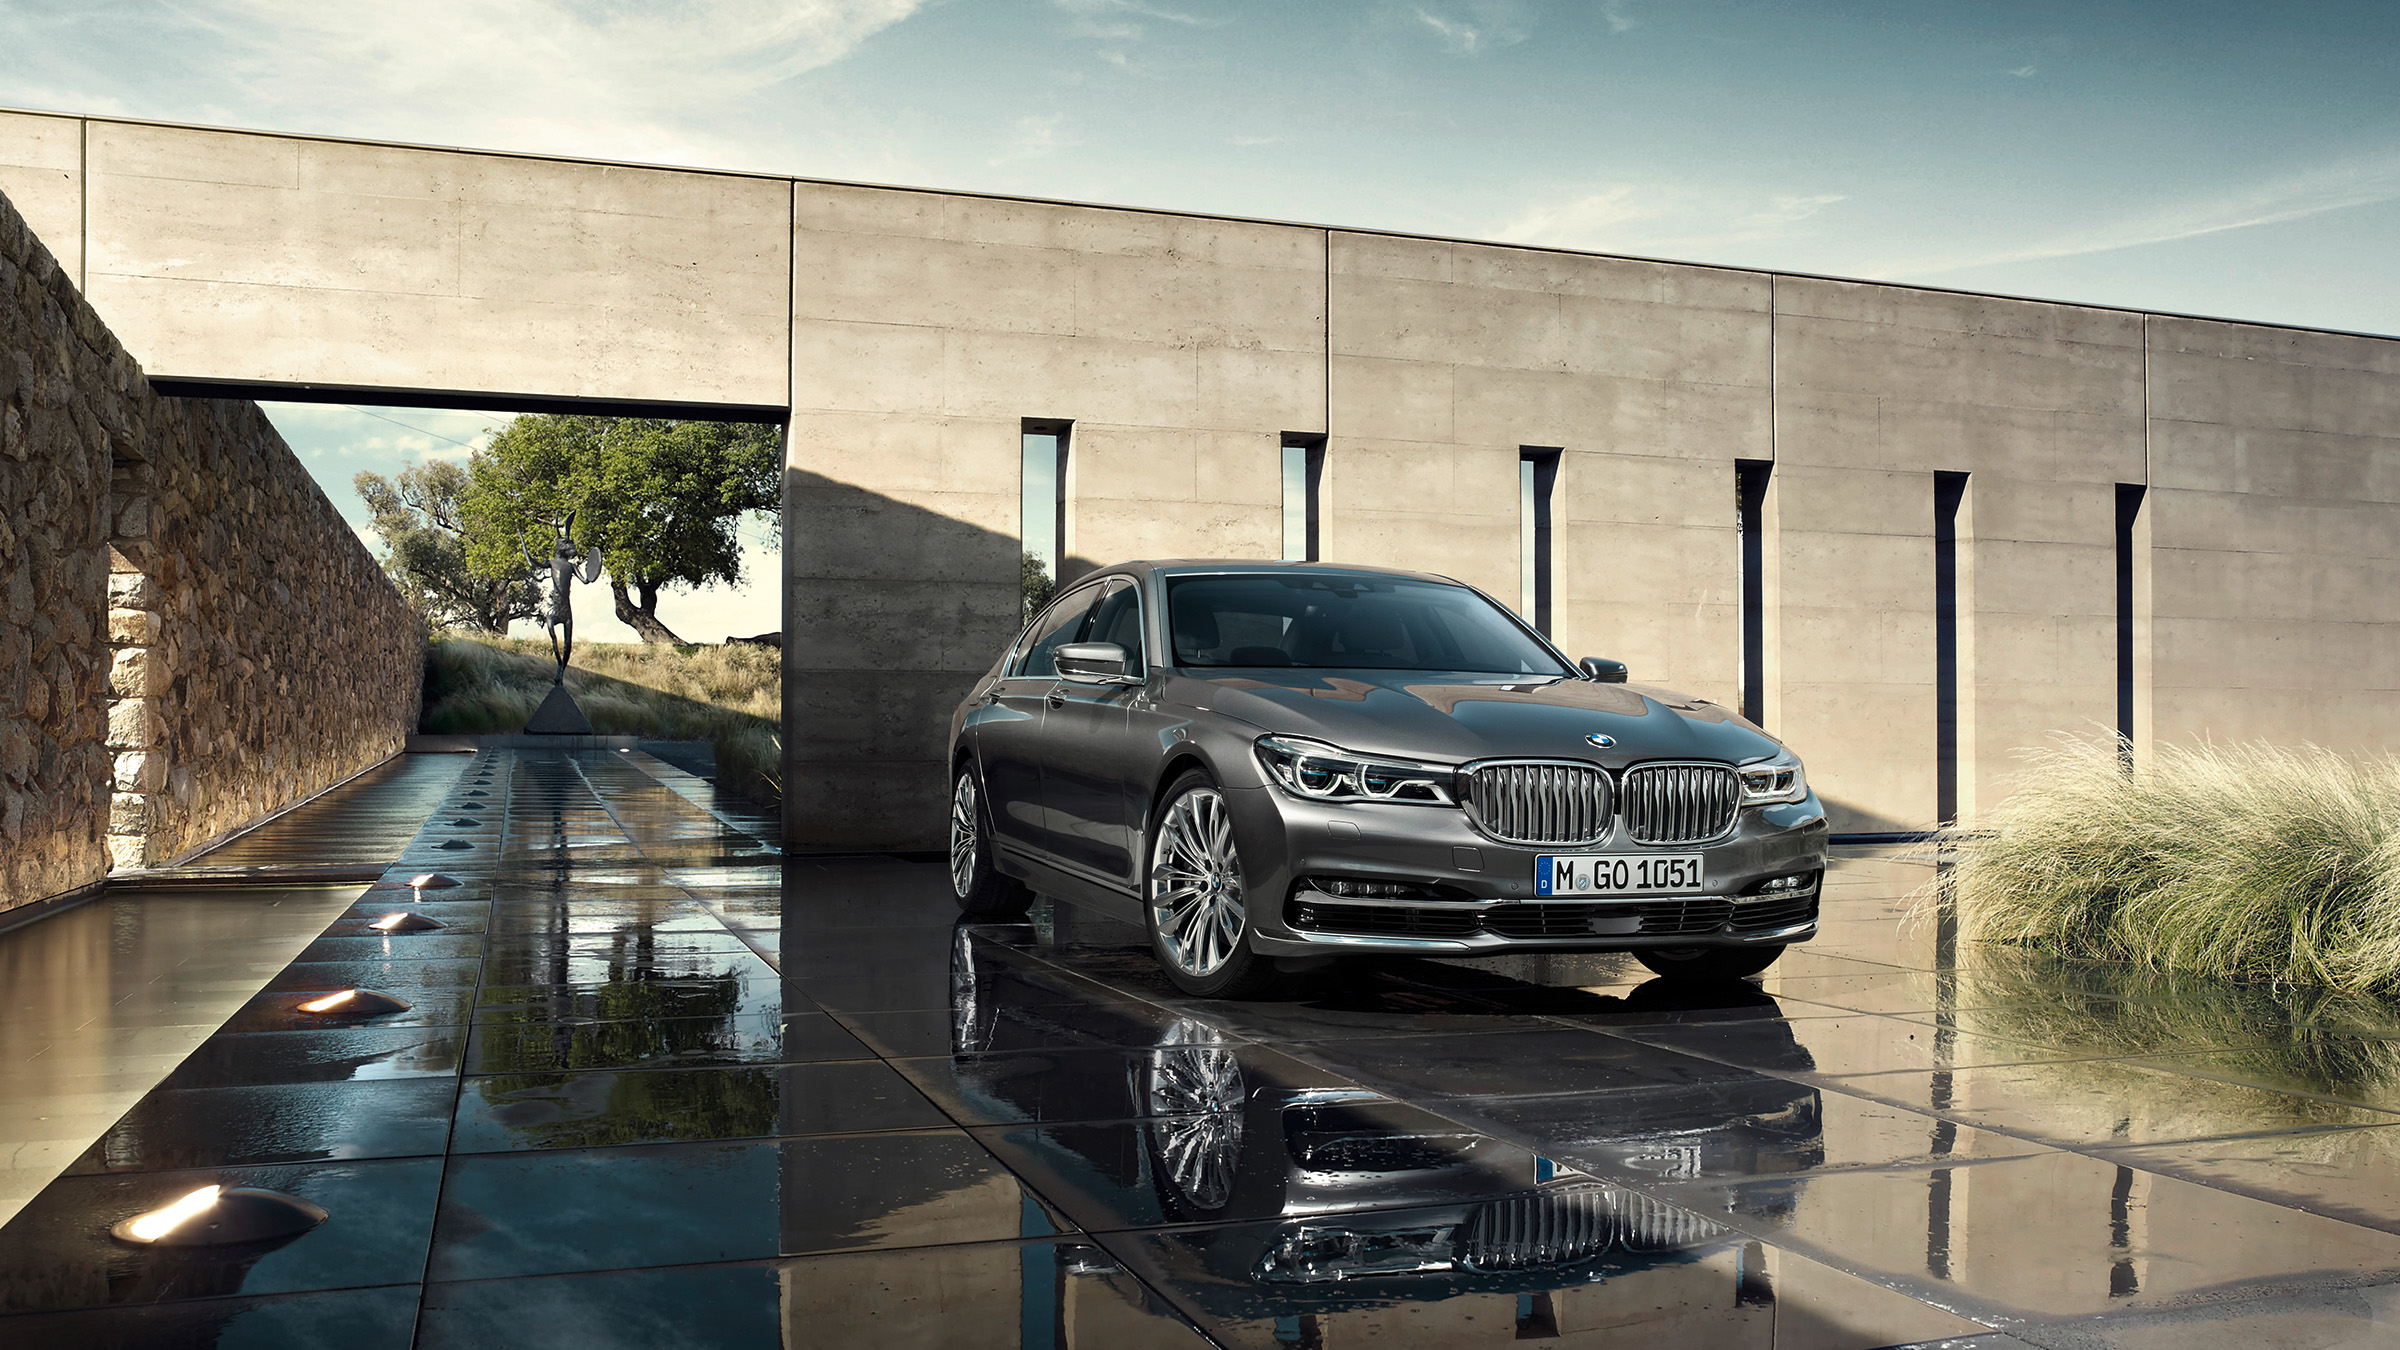 BMW_7ER_EMIR_HAVERIC_03_2400